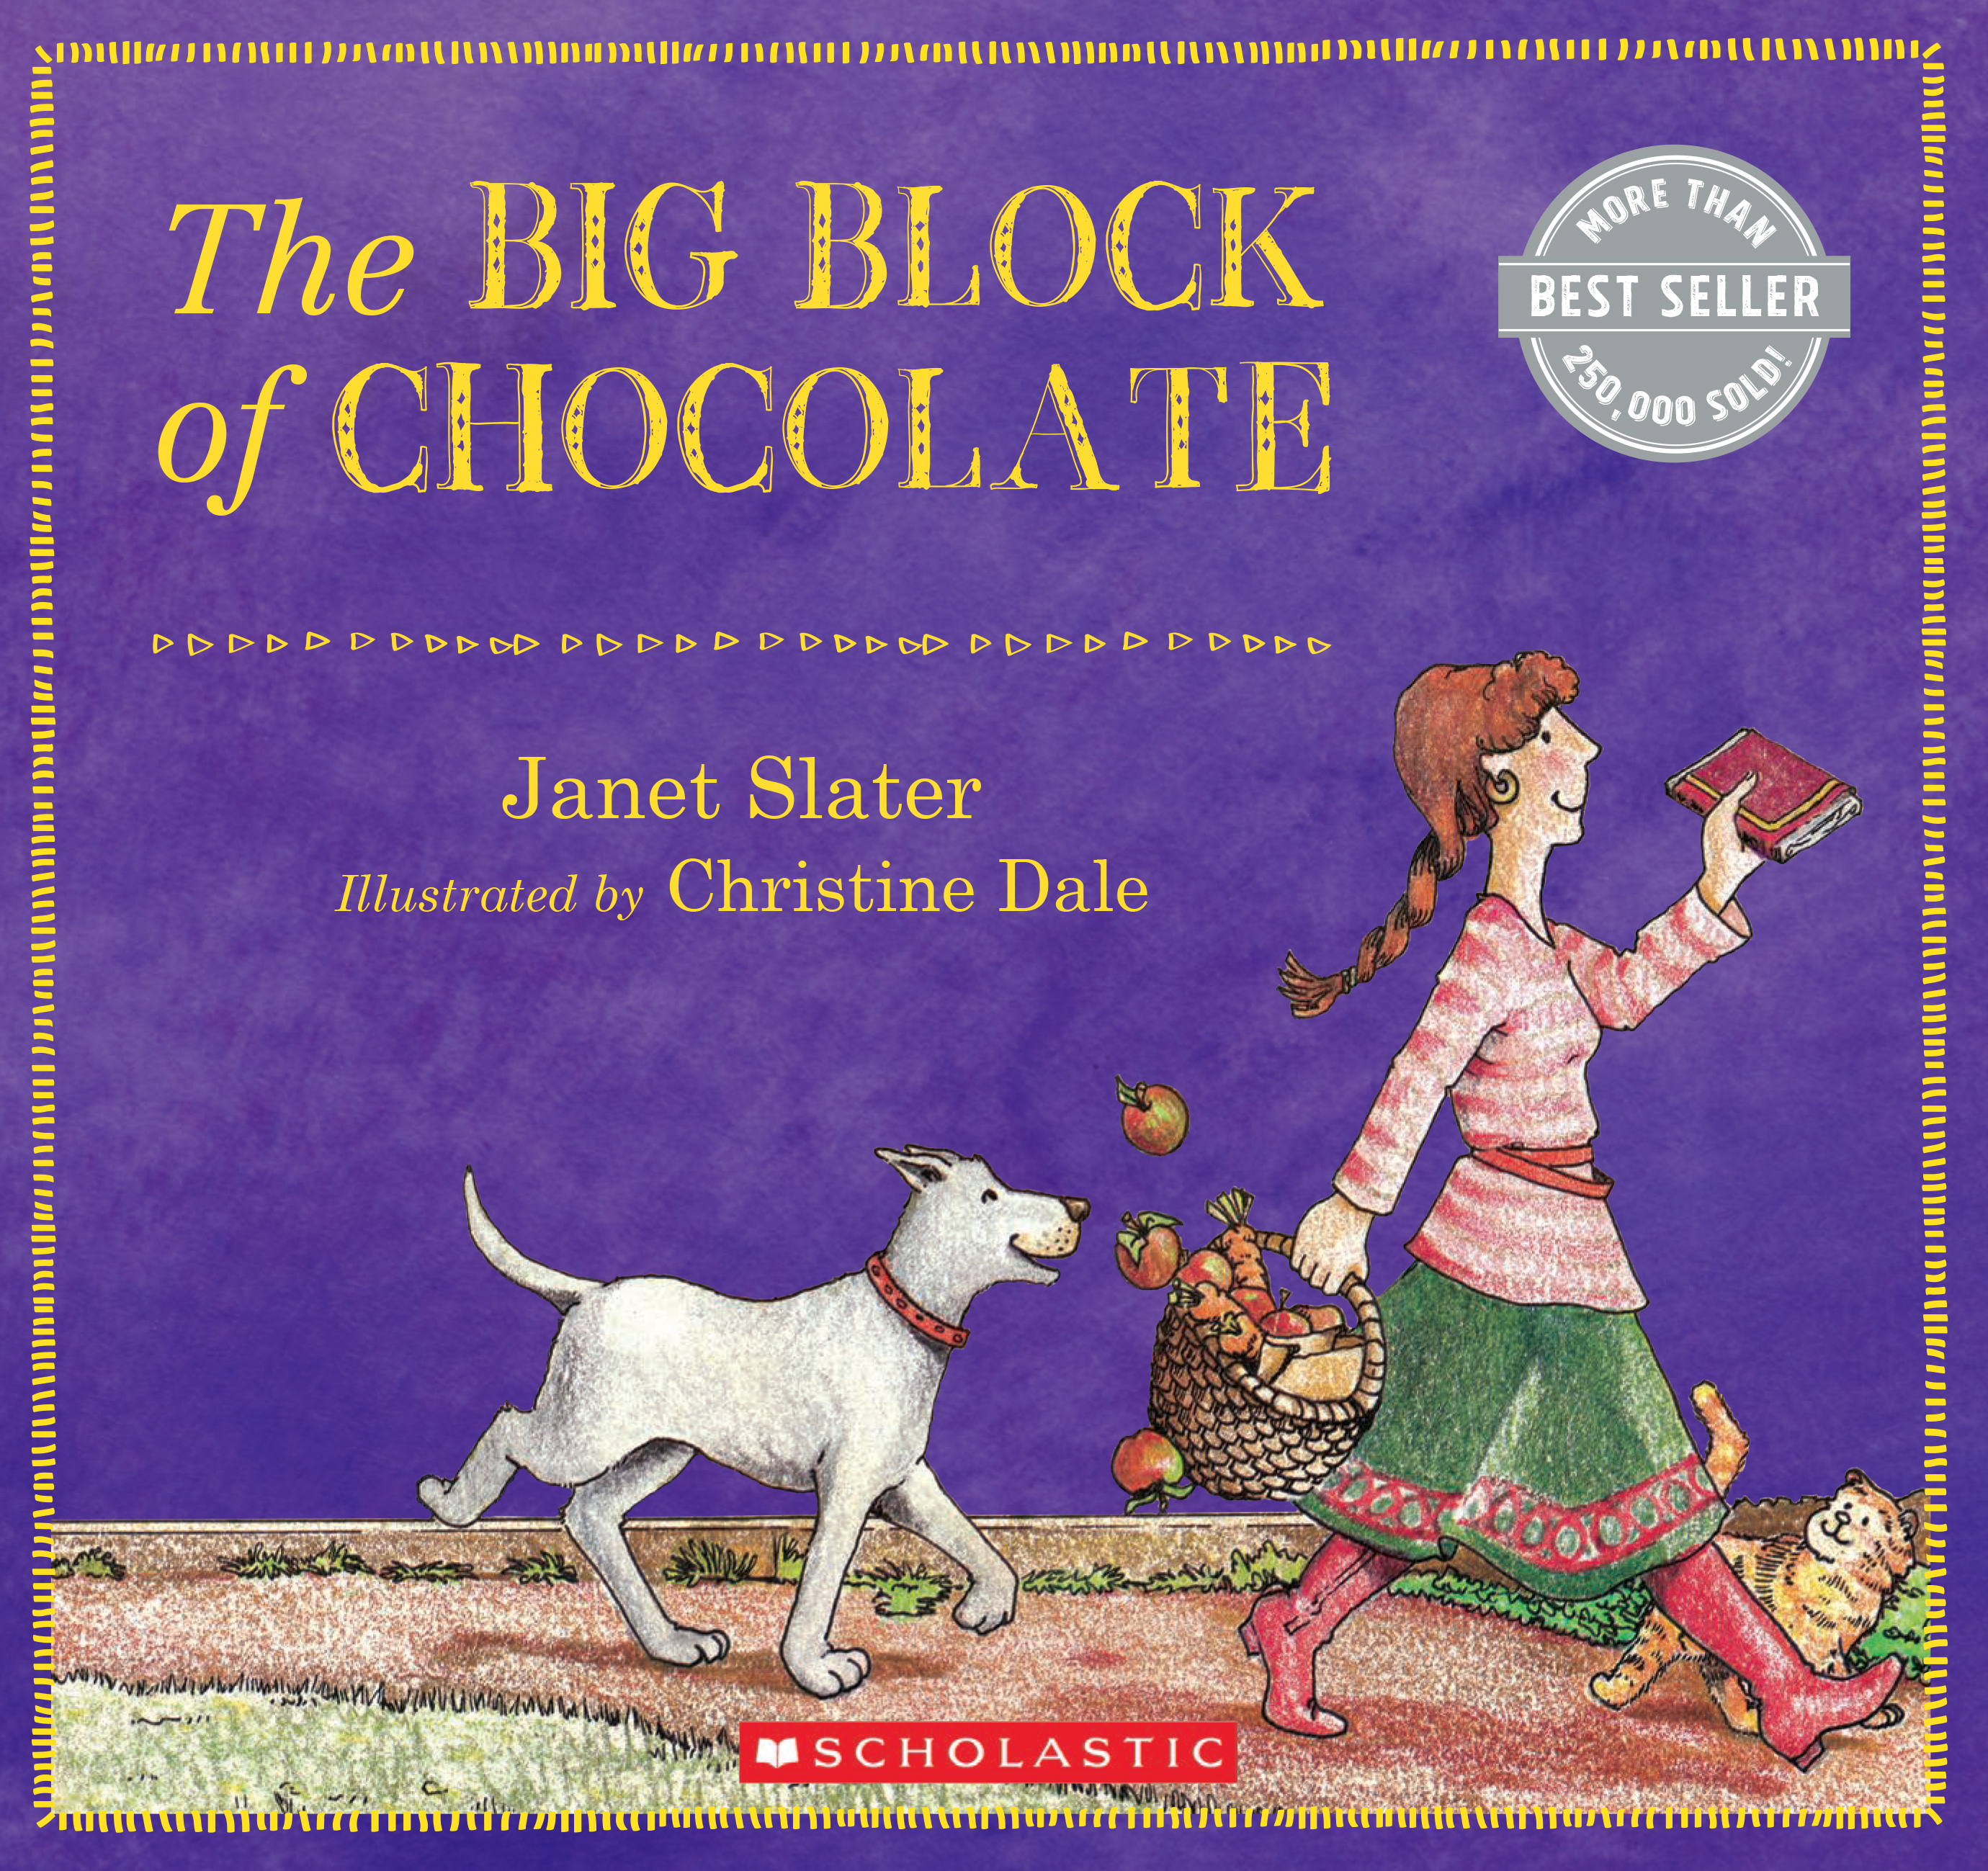 The big block of chocolate by Janet Slater  Delightful